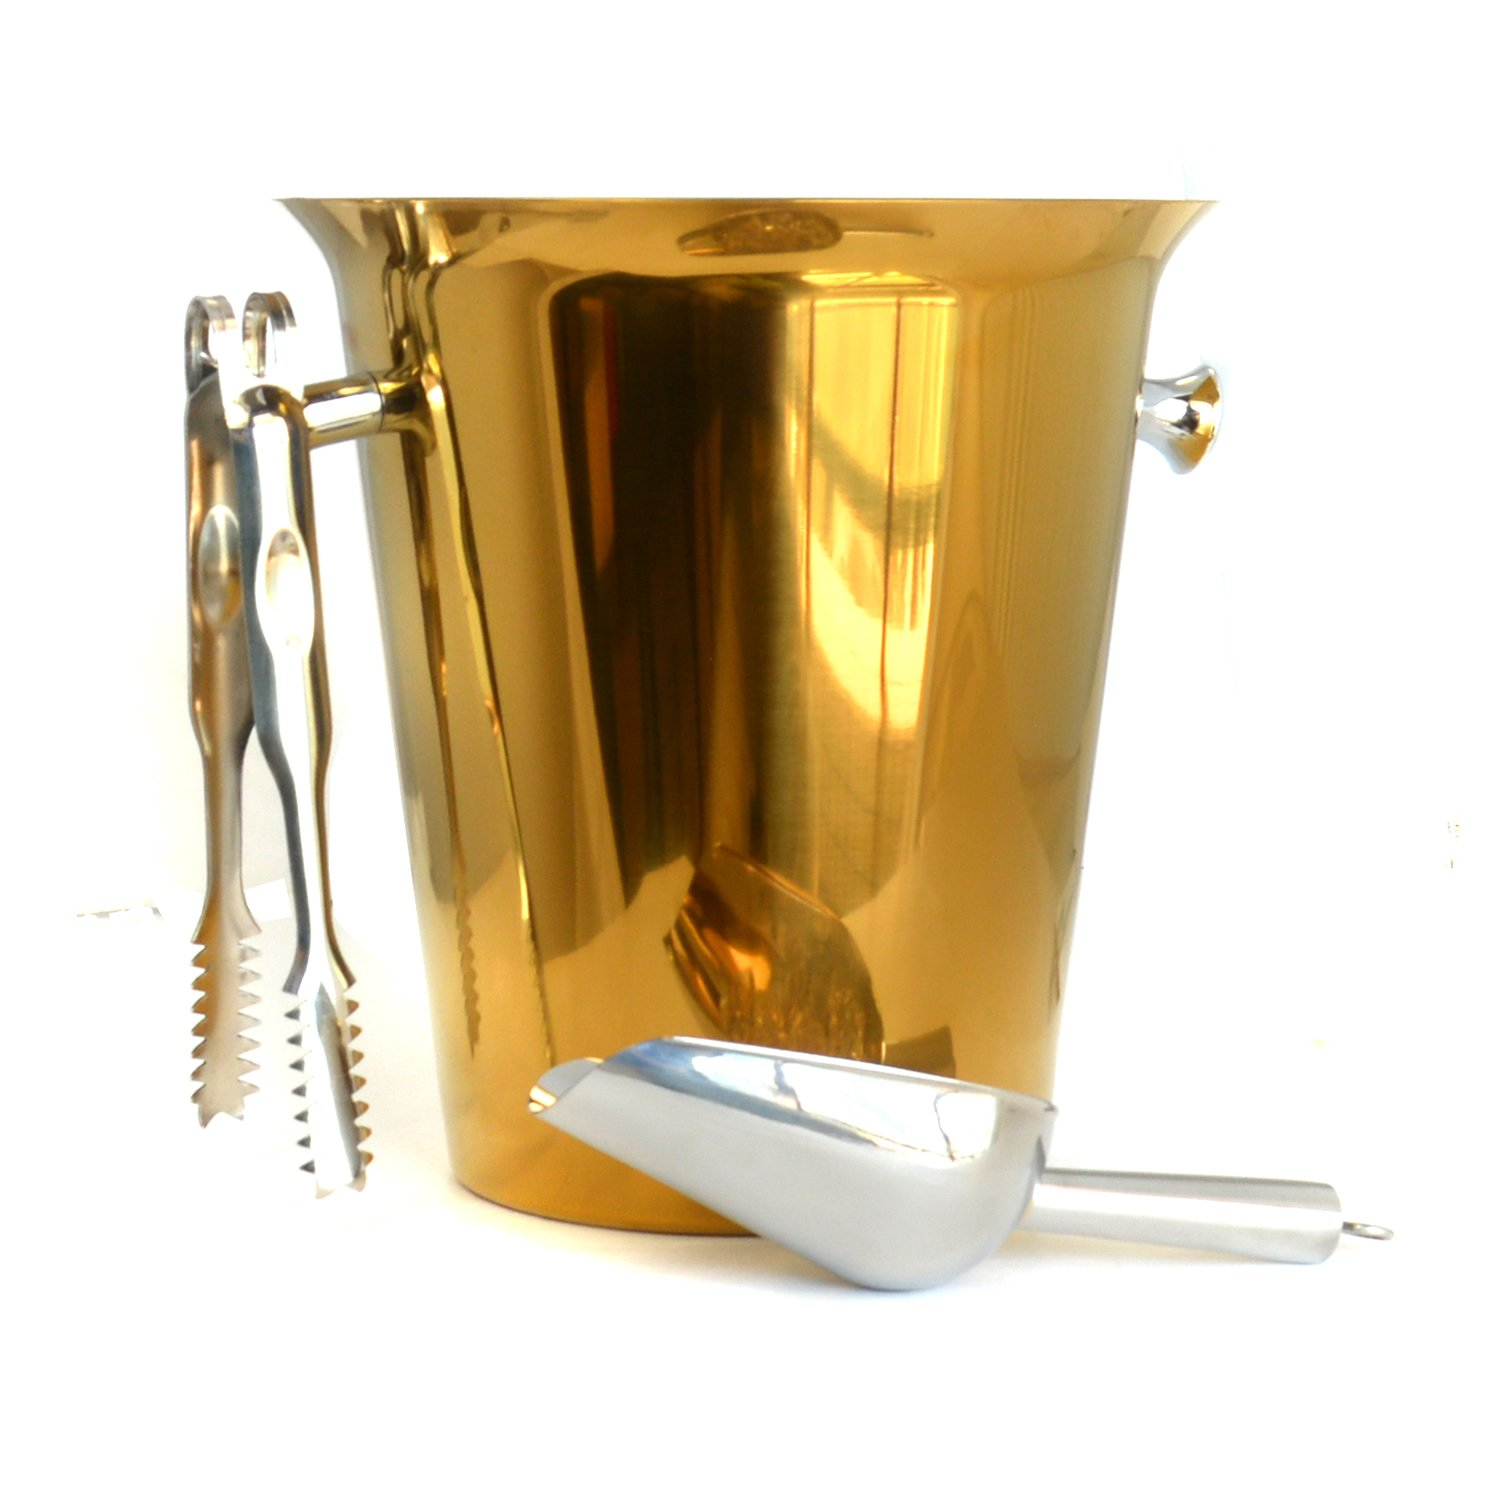 HAPPYNUTS Ice Buckets & Tongs Wine Chillers SET include Stainless Steel 5-Liter Ice Bucket, 8-Inch Ice Tong and 6-Ounce Ice Scoop, Mirror Finish, Gold